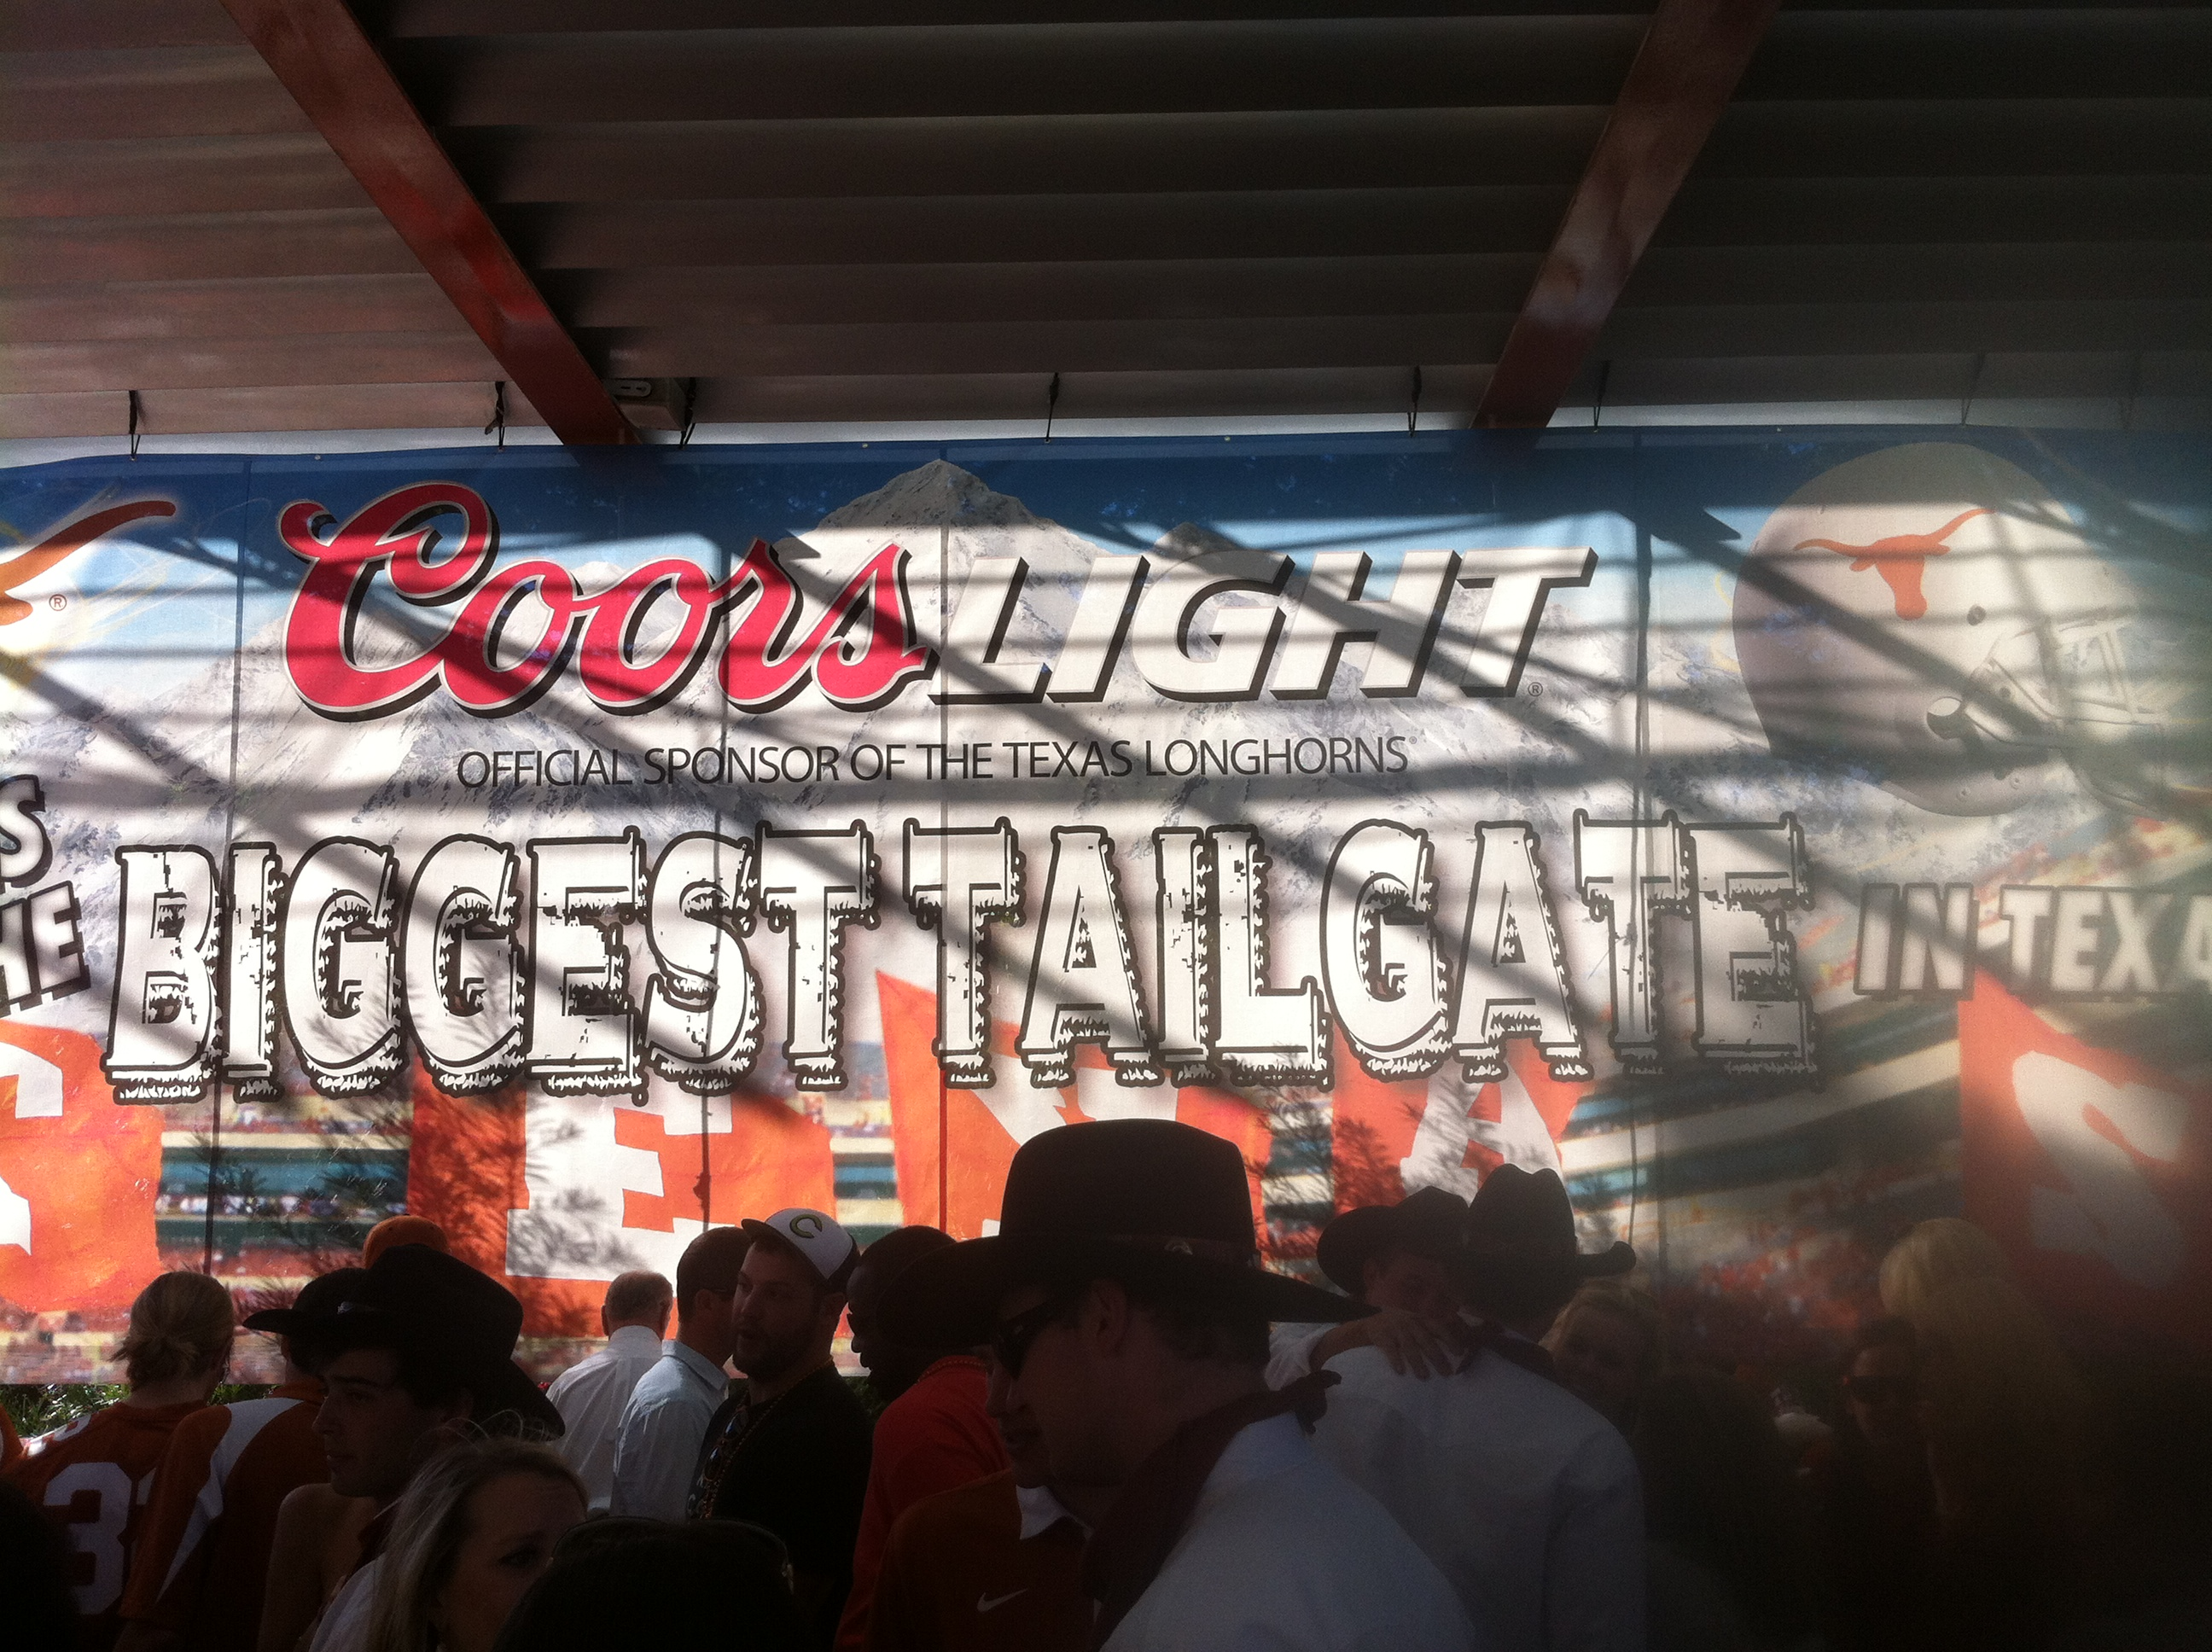 Fans came in droves to the Coors Light Tailgate next to the Alumni Center